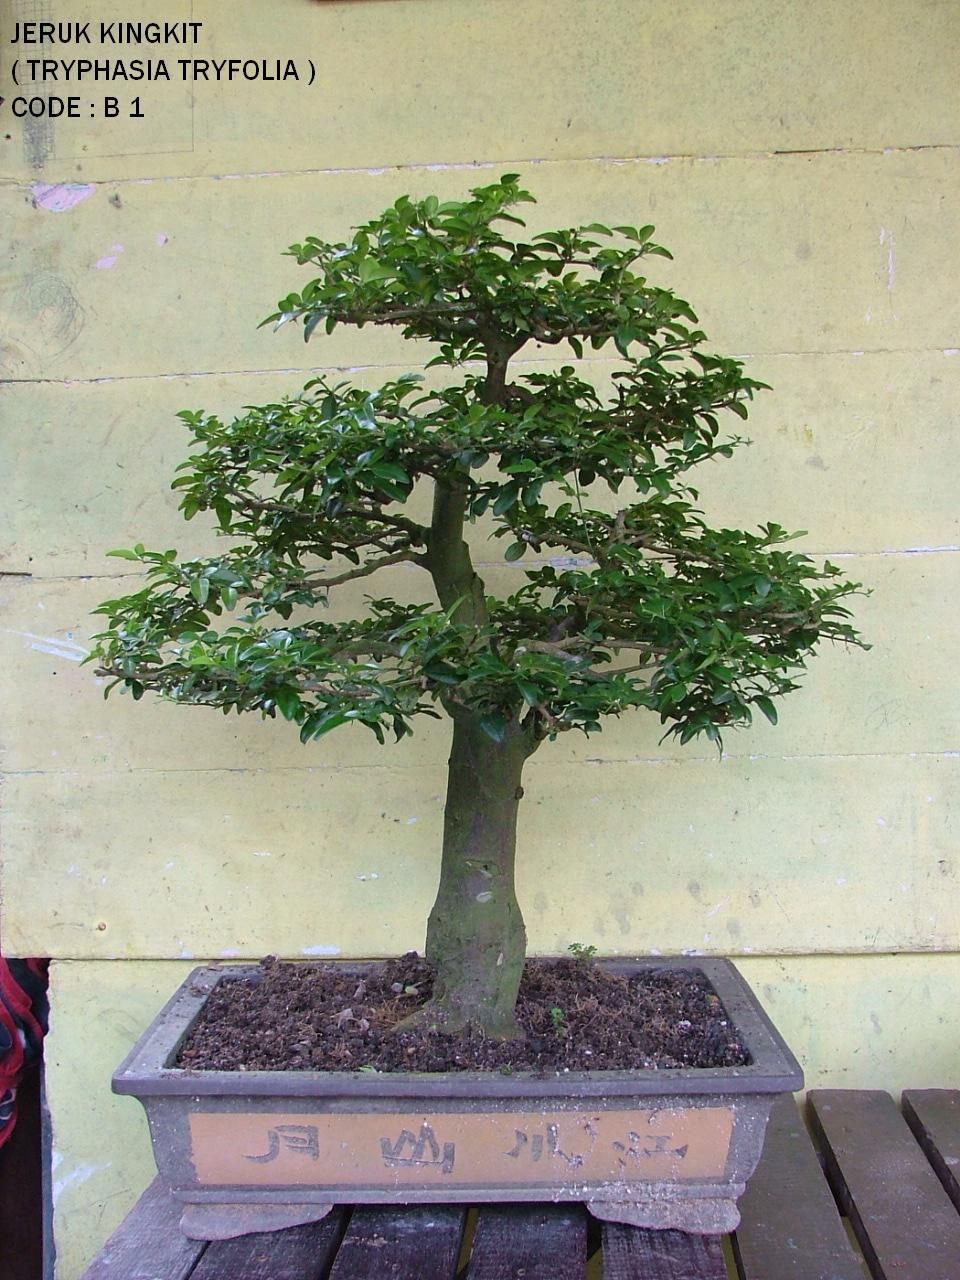 BONSAI DAN PERJALANAN